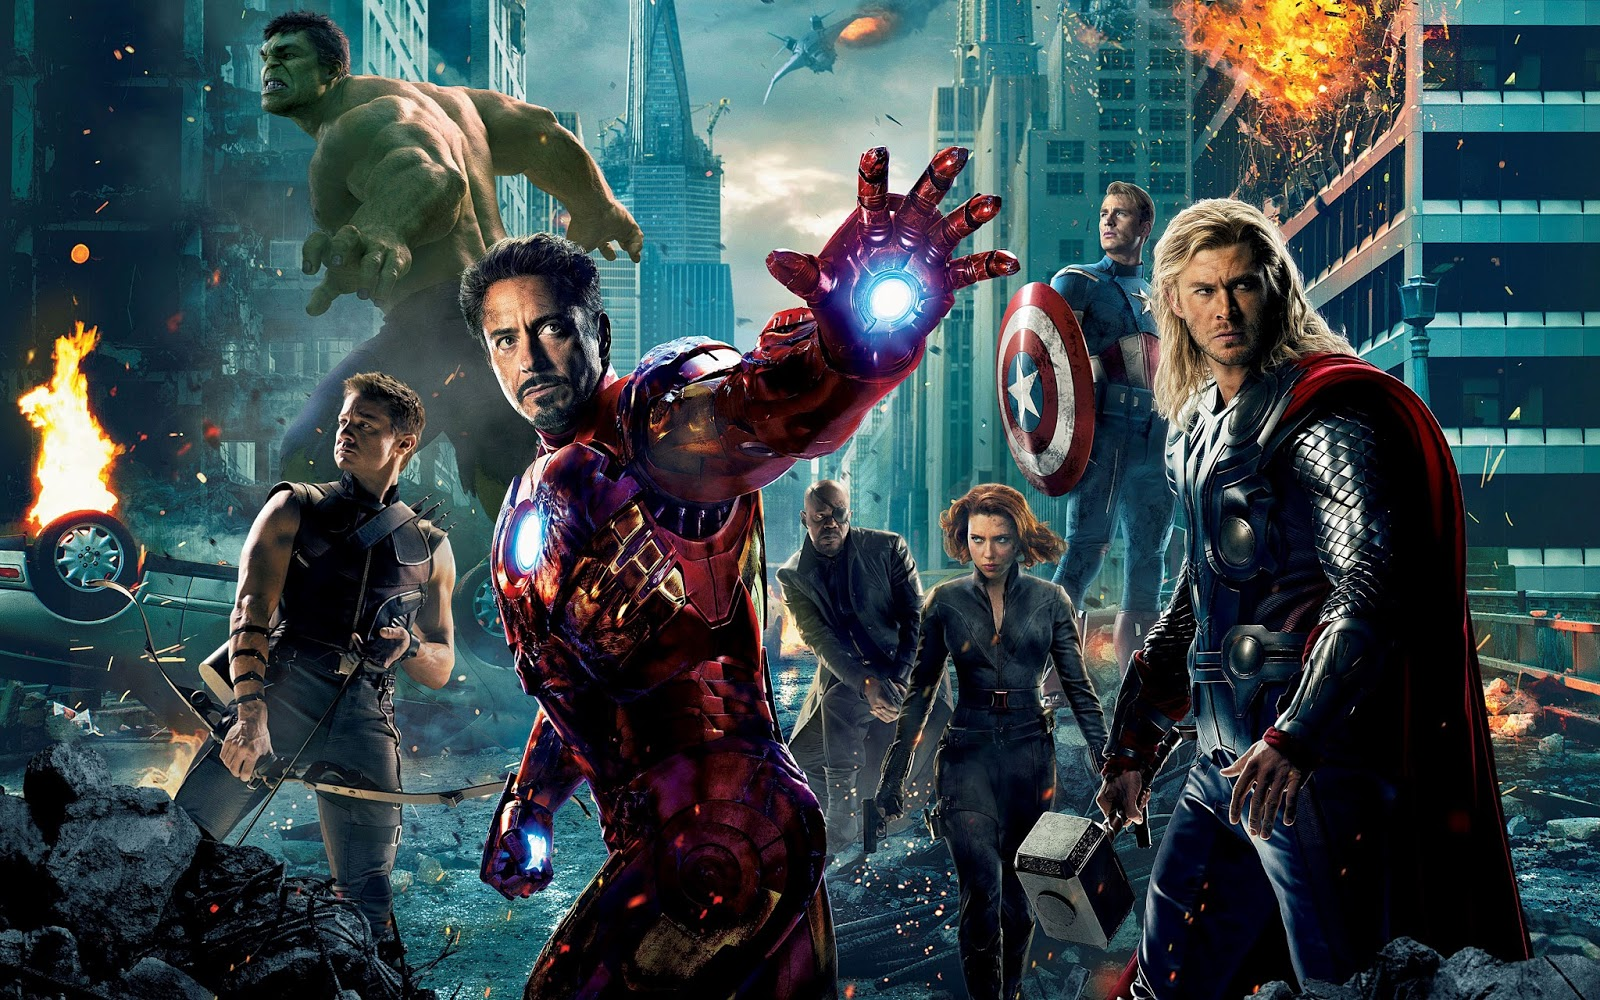 Top 5 hd avengers photos free download rd photo store - Avengers hd wallpapers free download ...